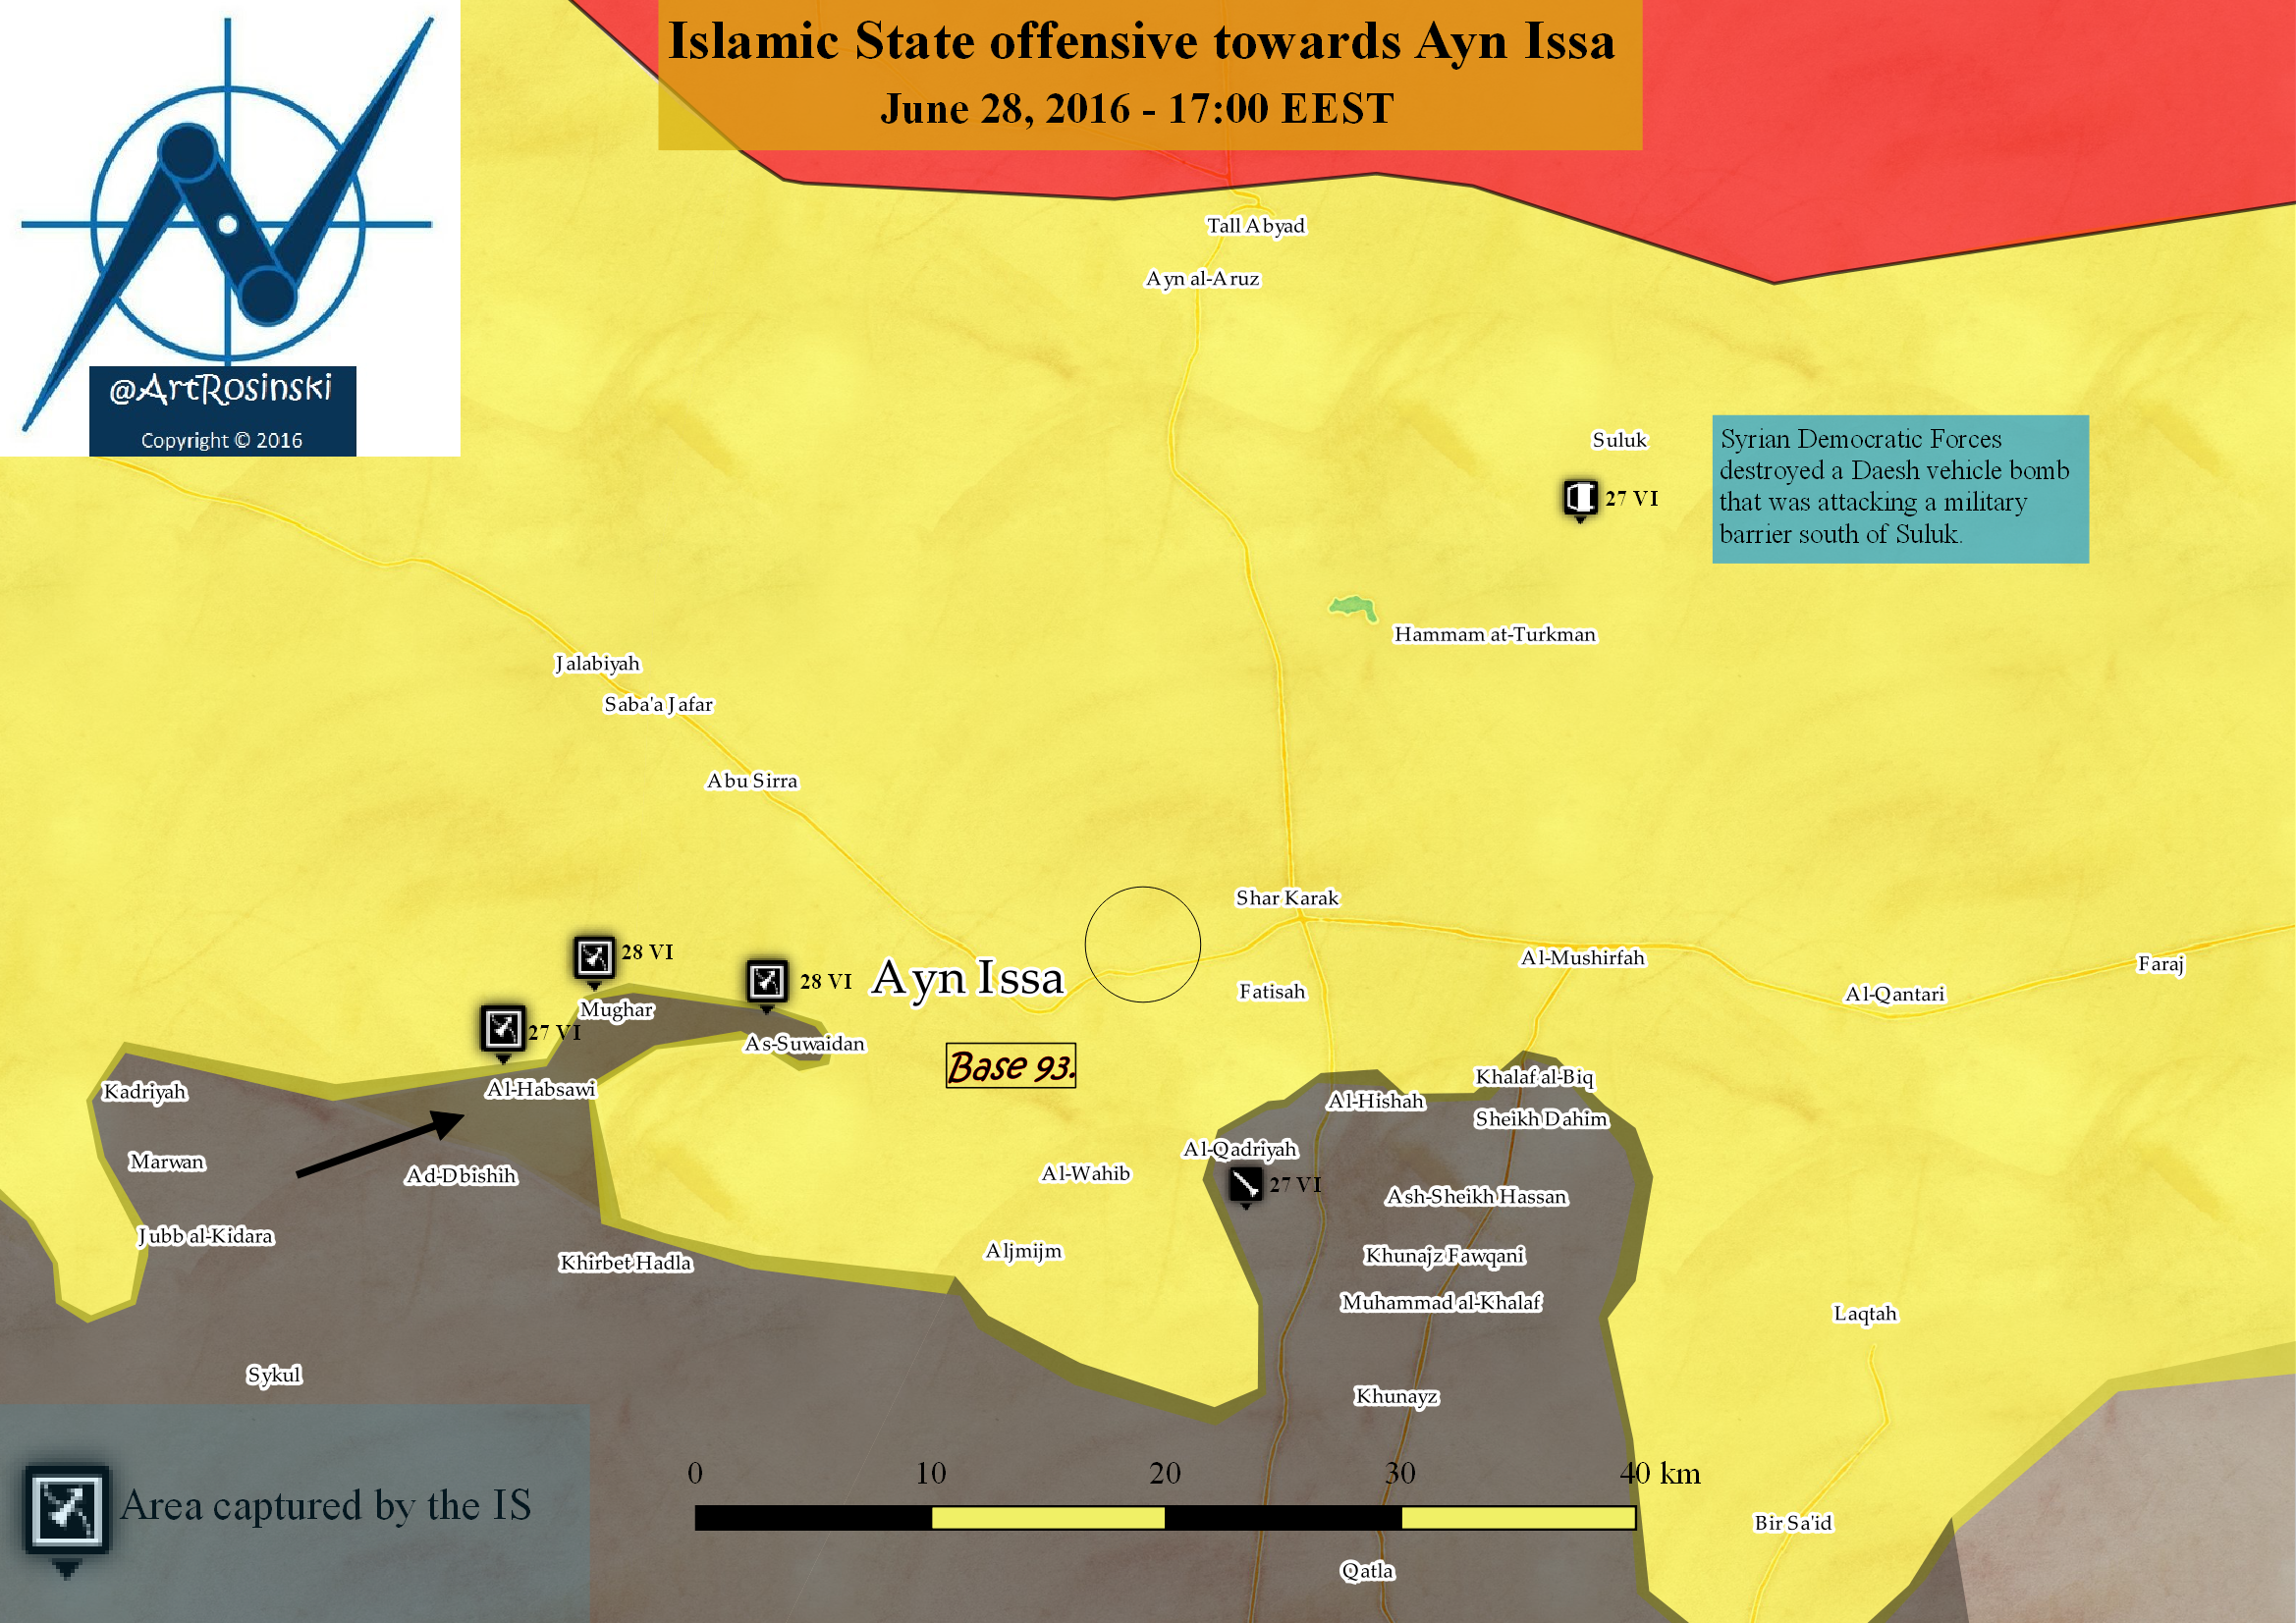 Islamic State offensive towards Ayn Issa (28 VI)